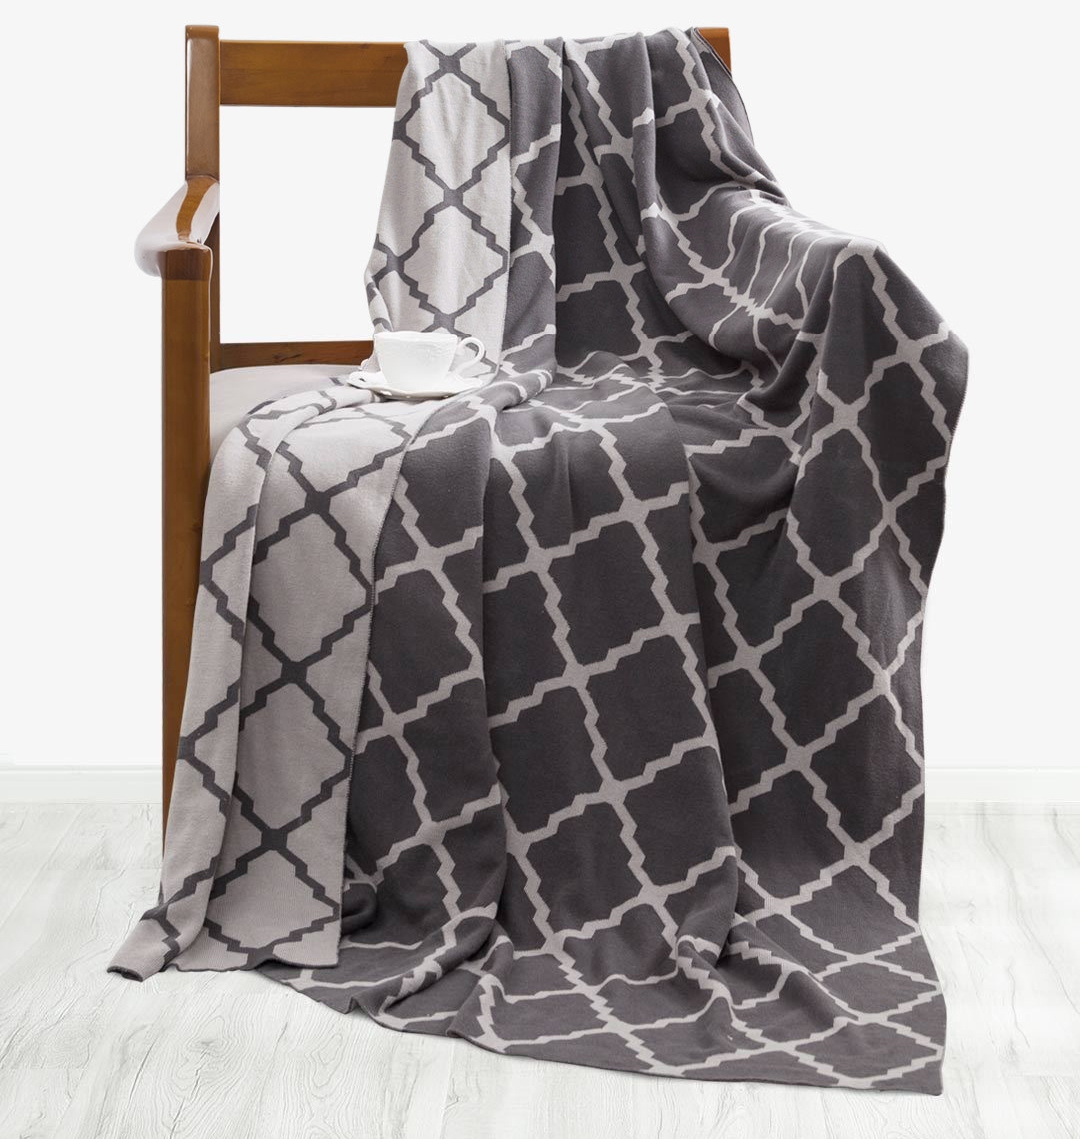 Tonight-Combed-cotton-knit-blanket-Grey